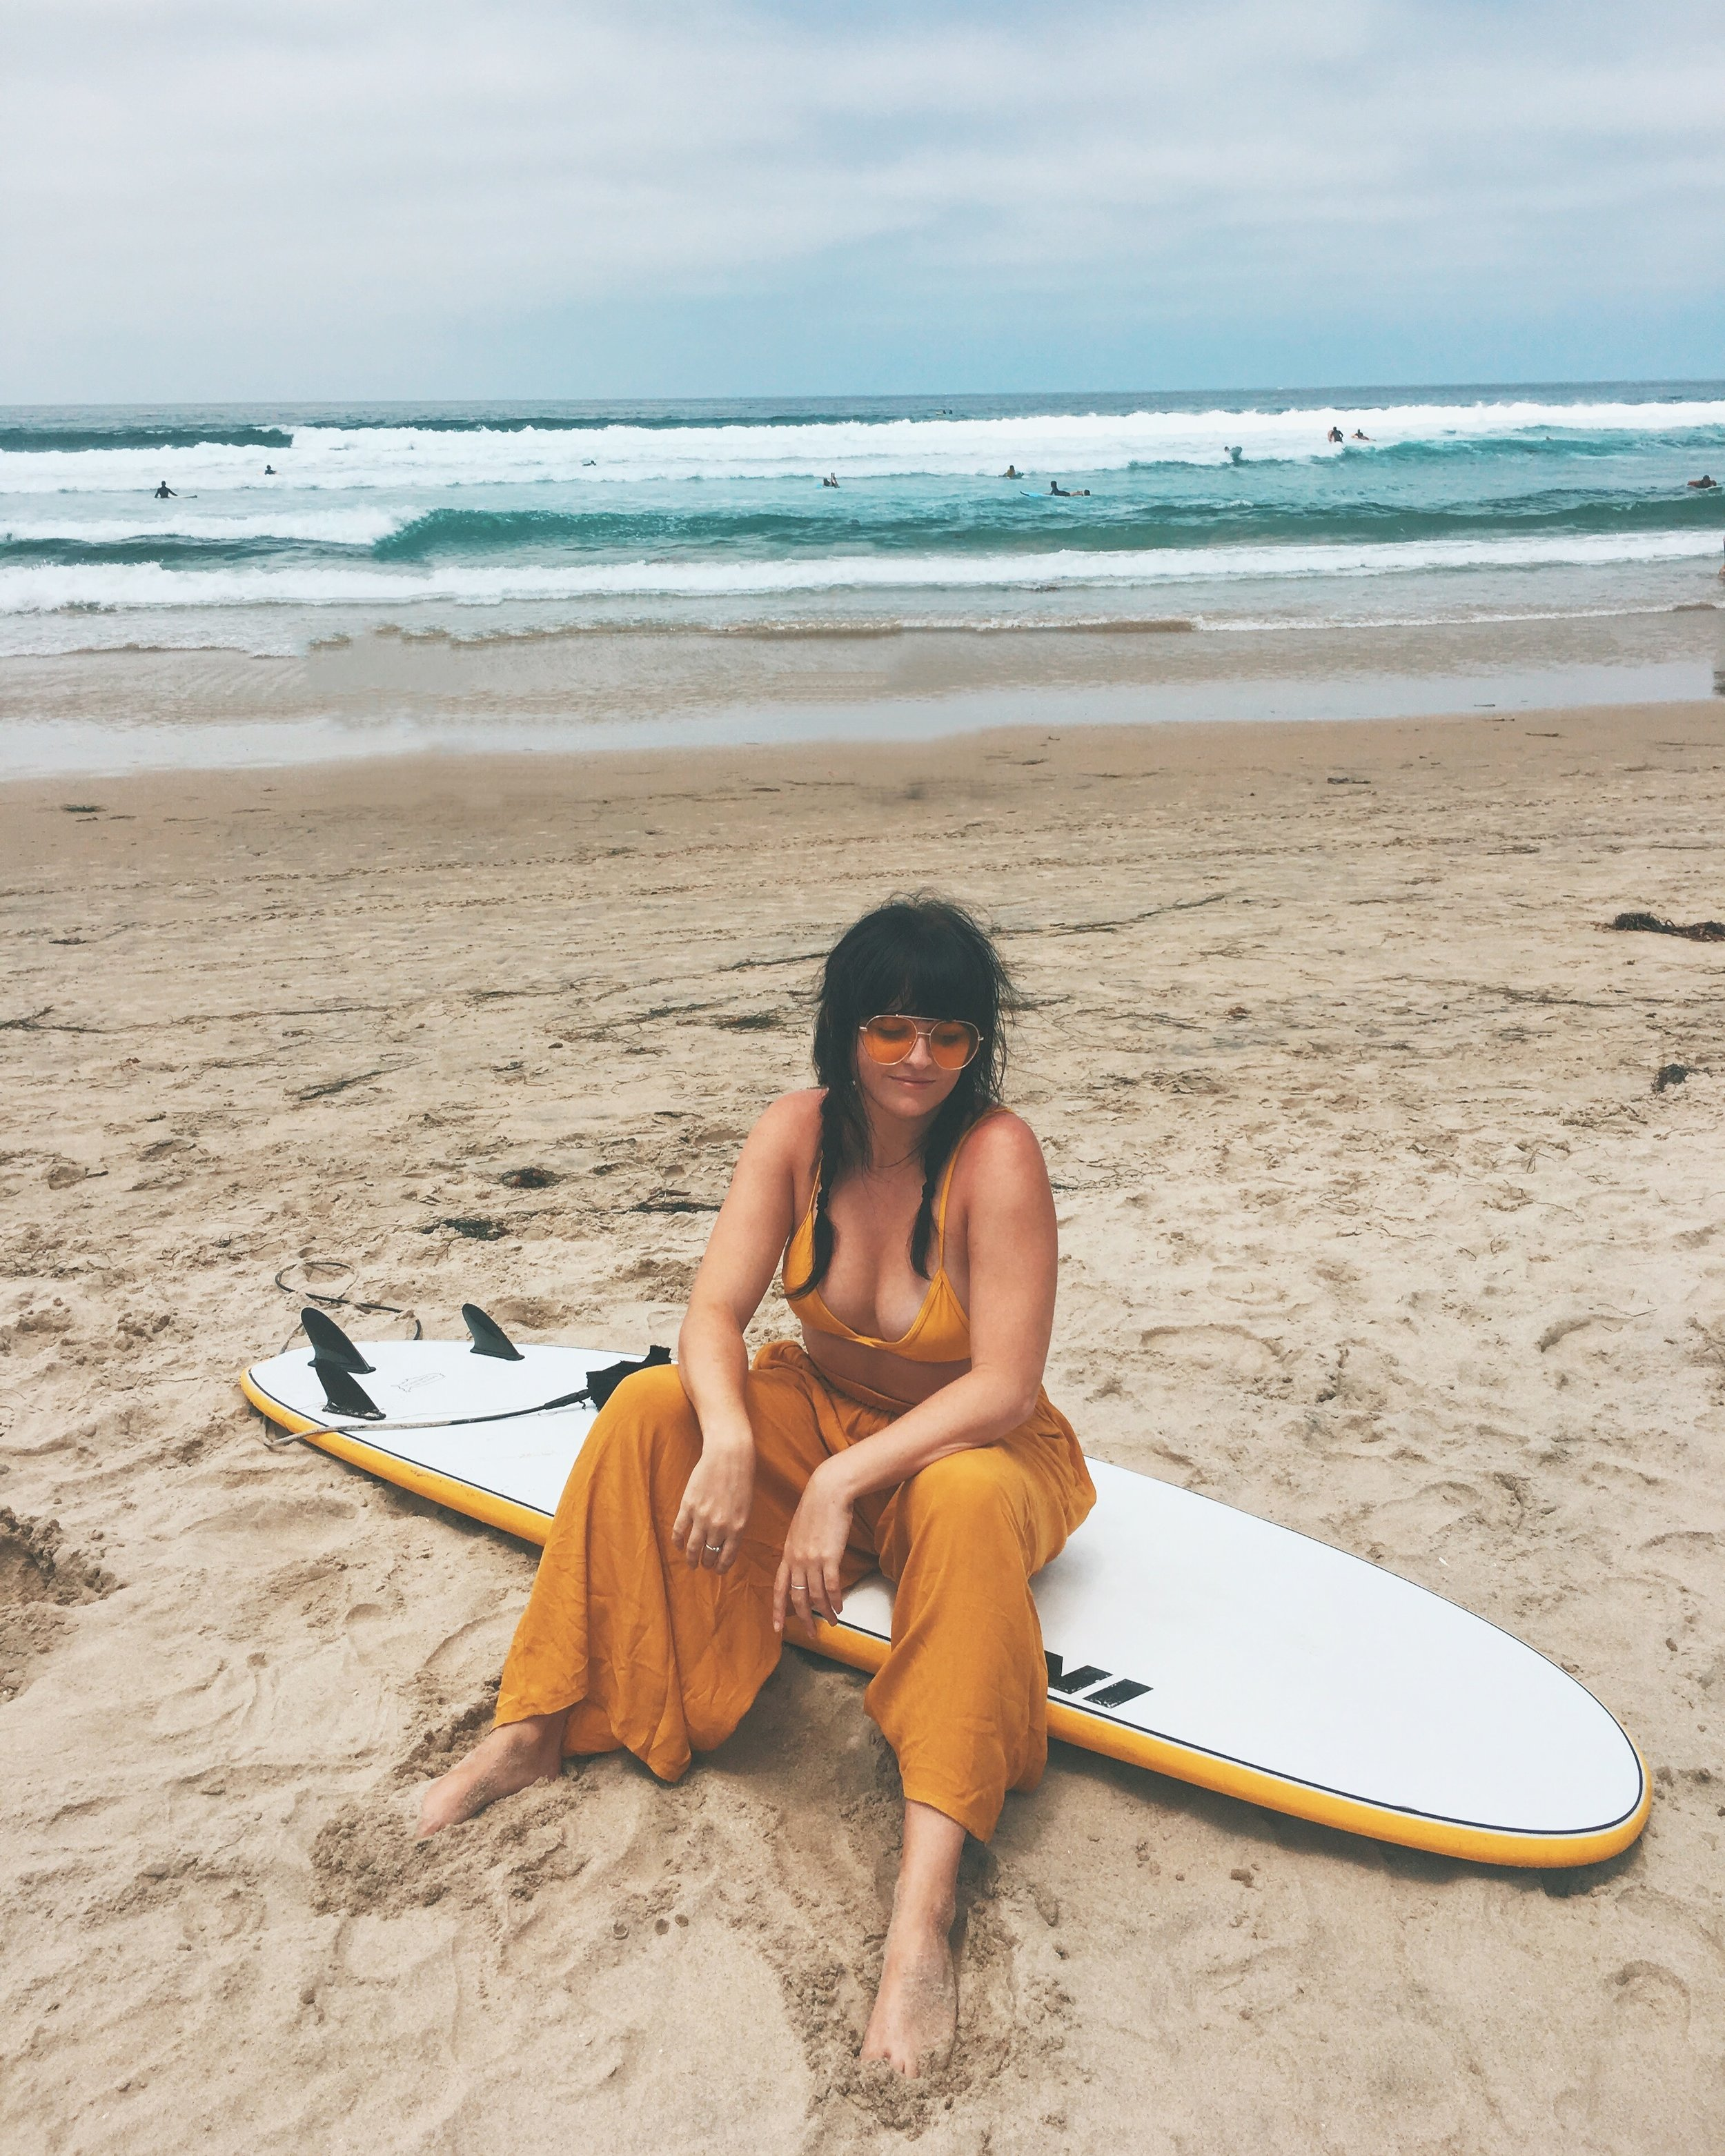 His surfboard matched my all-yellow outfit so duh I made him take a photo of me.